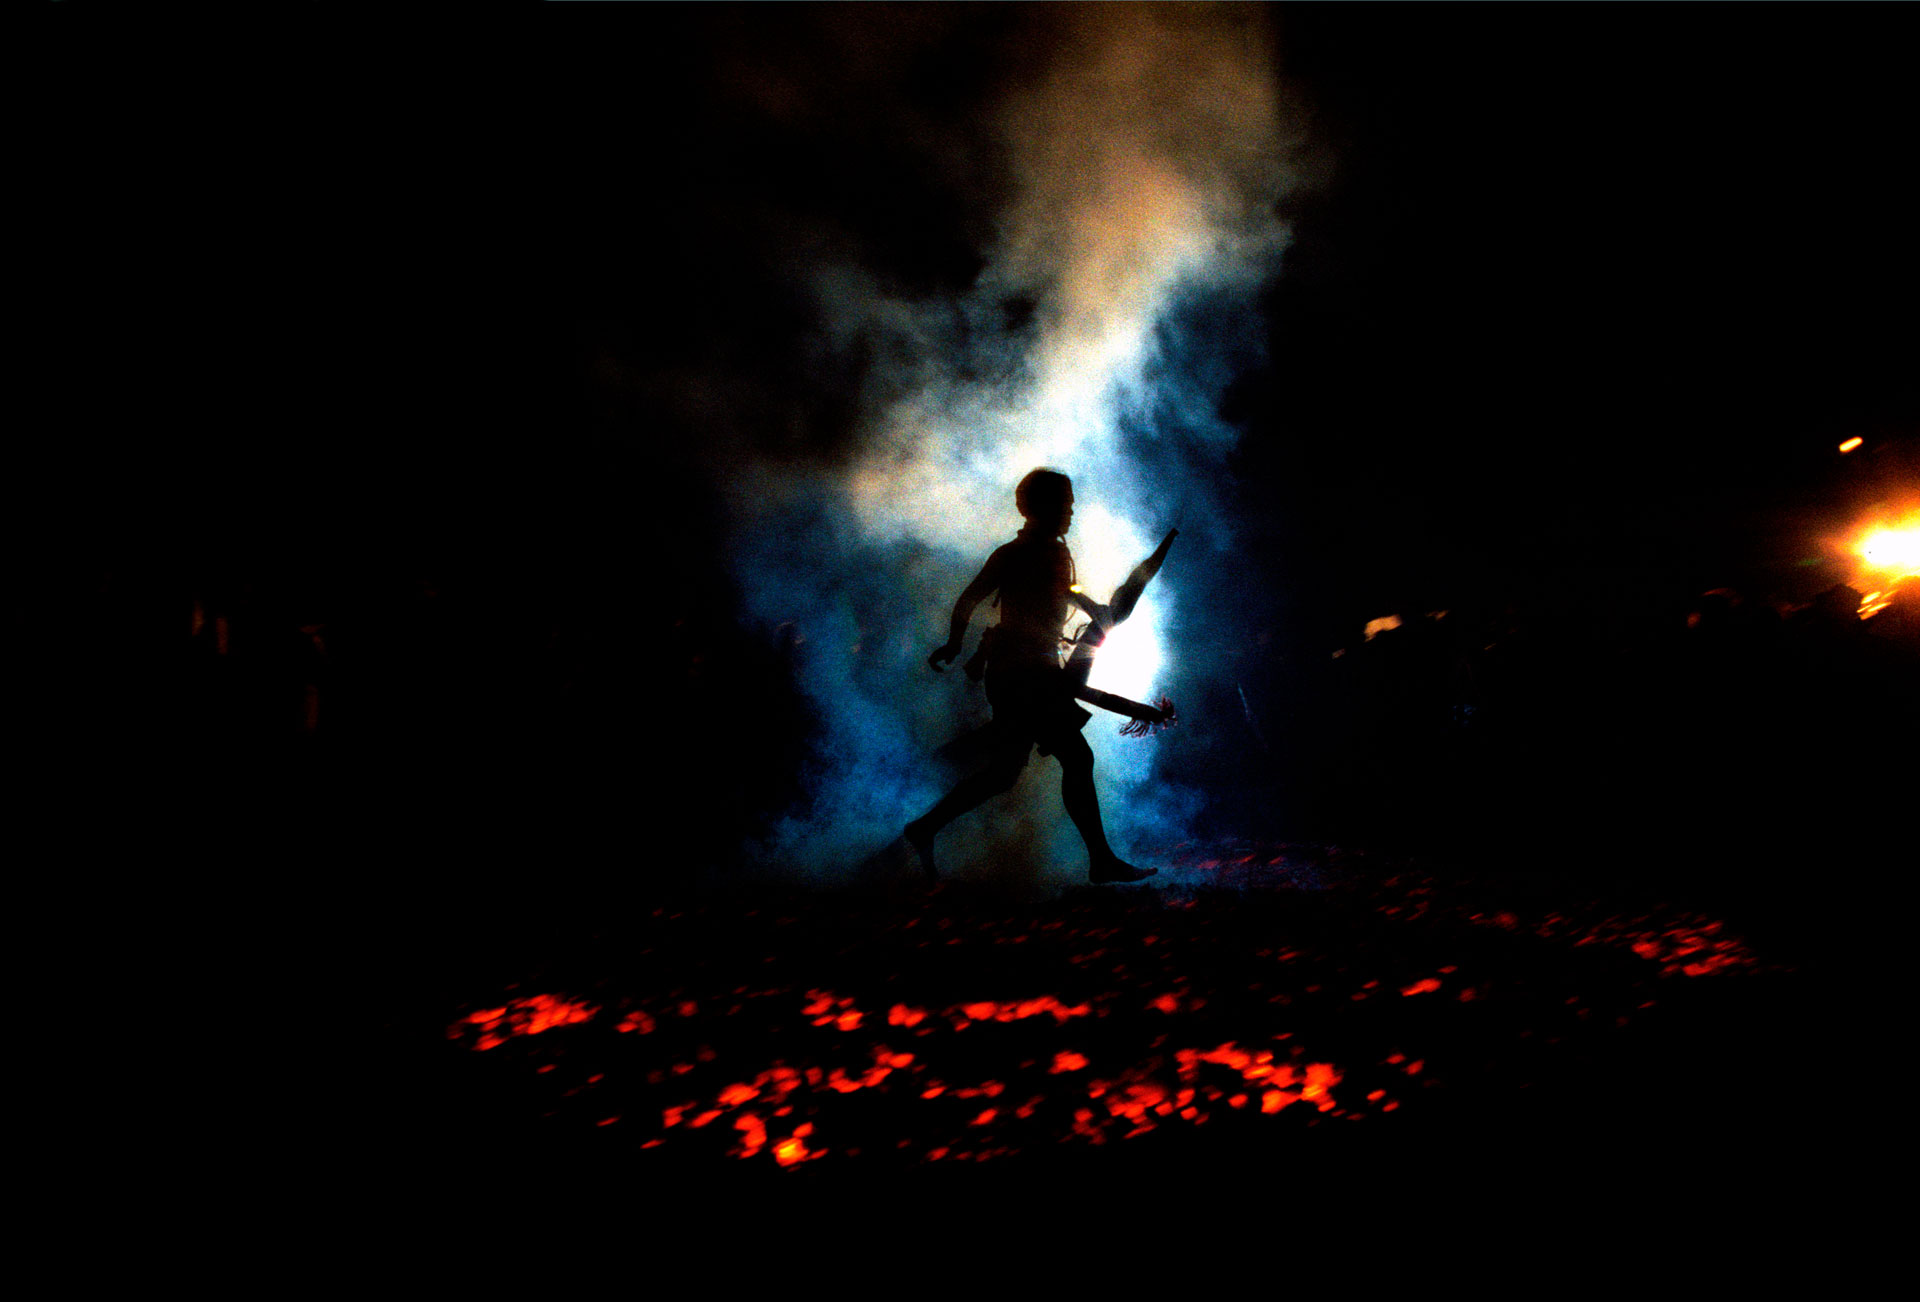 Jason Florio photography - color image a man, firewalker, walking across hot coals at a ceremony in Thailand